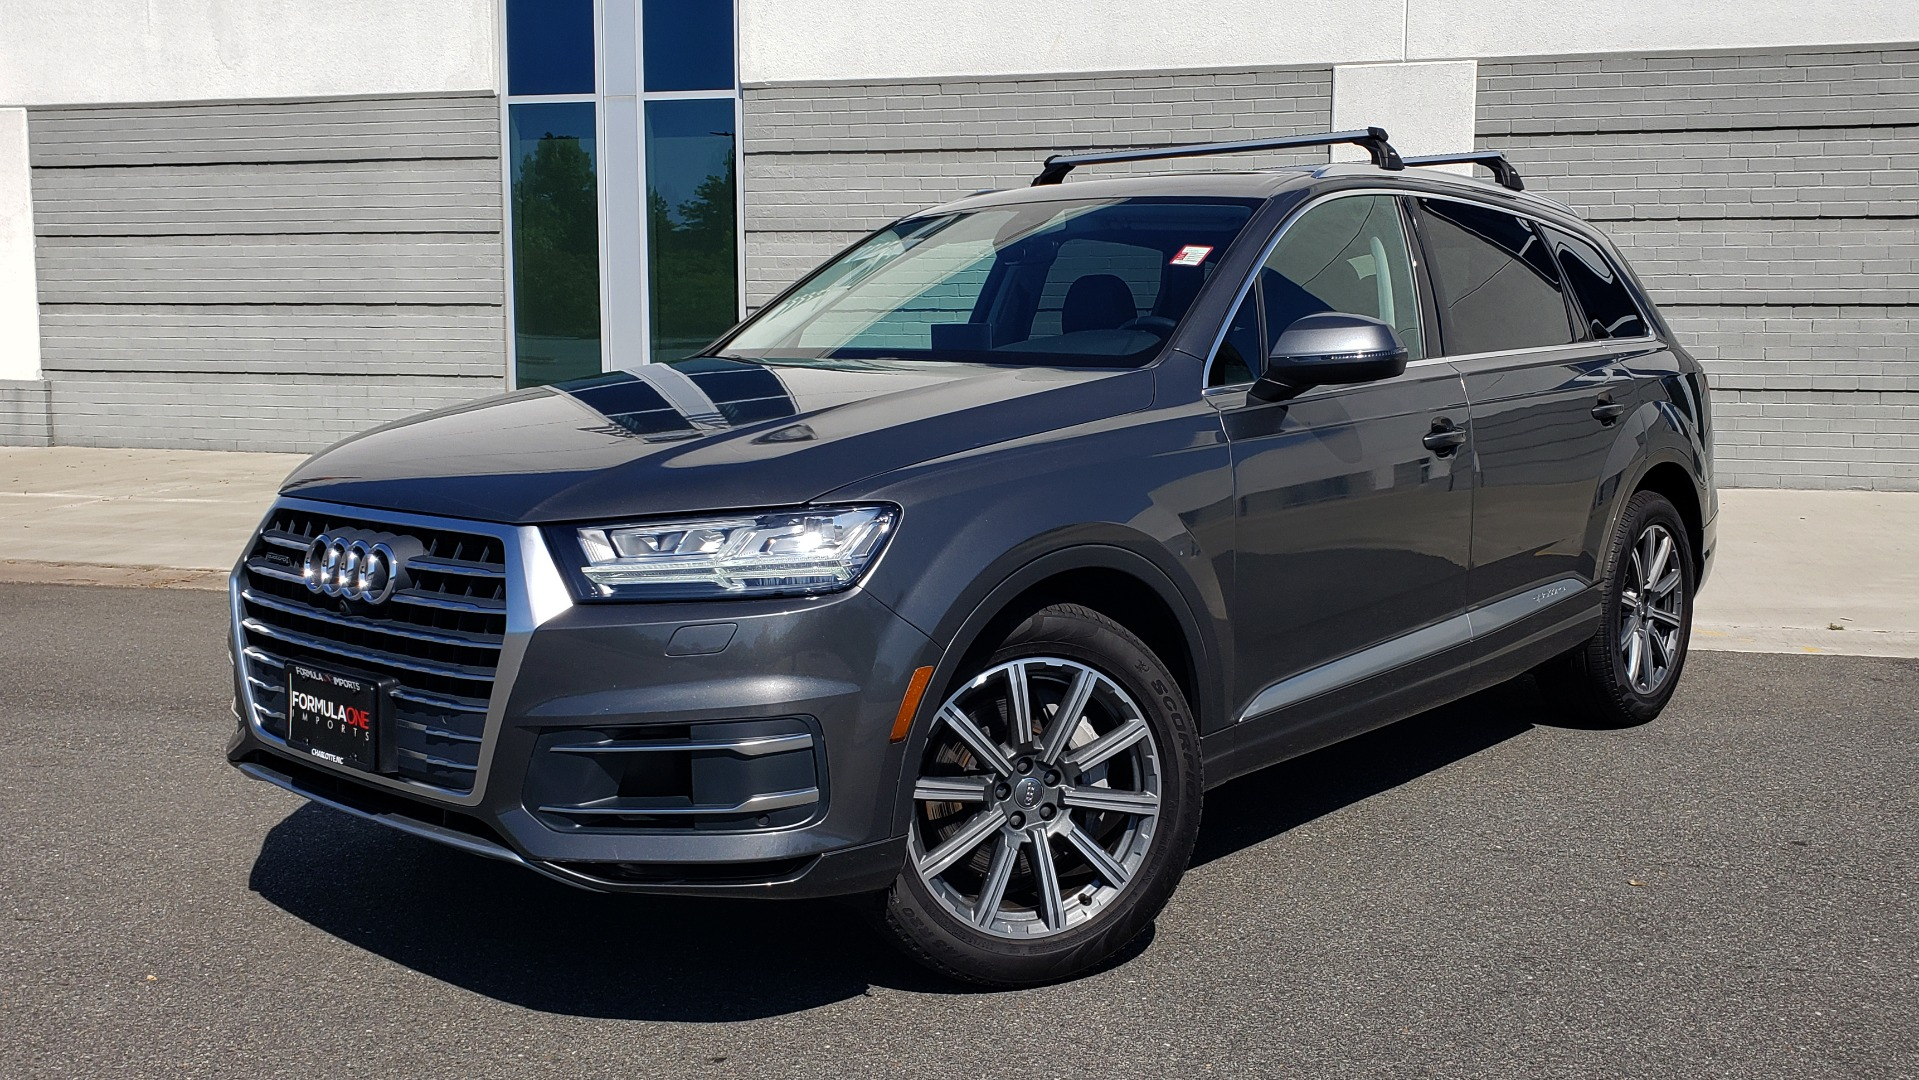 Used 2018 Audi Q7 PREMIUM PLUS TIPTRONIC / NAV / SUNROOF / VISION PKG / CLD WTHR / REARVIEW for sale $44,395 at Formula Imports in Charlotte NC 28227 1